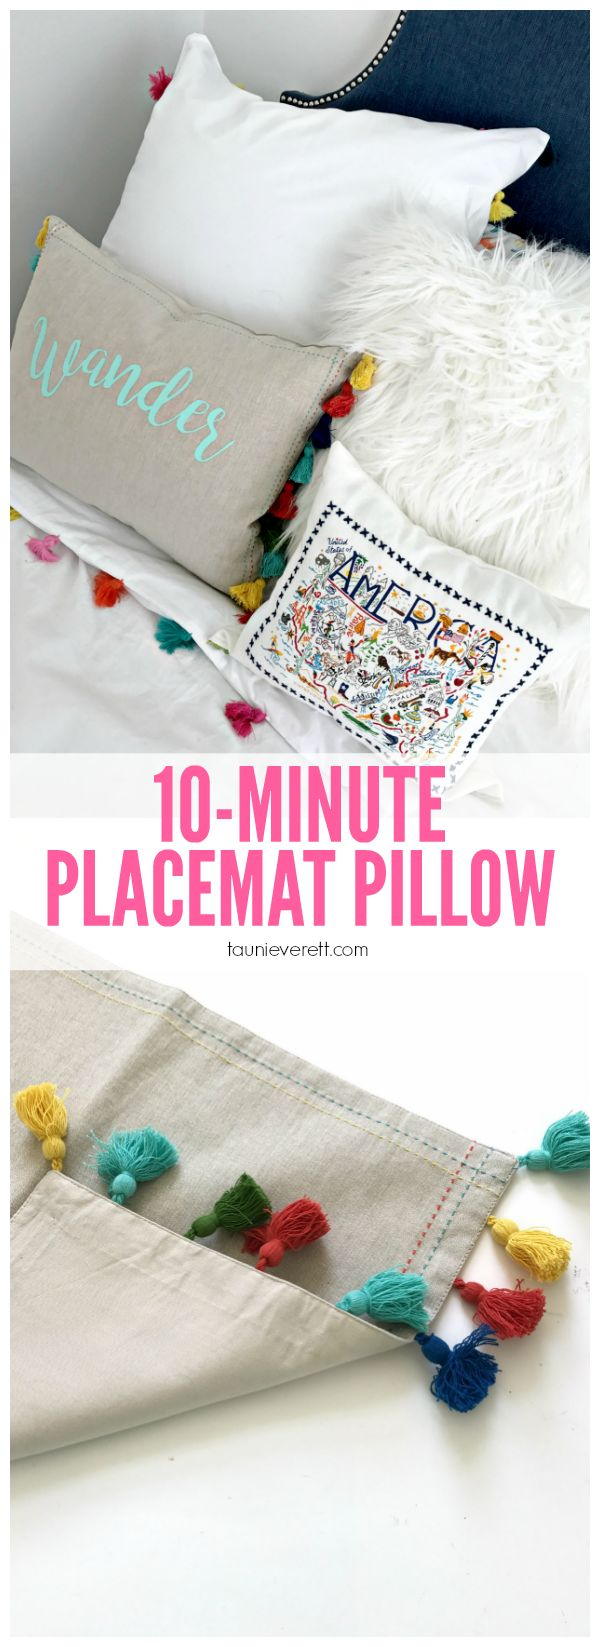 10 Minute Placemat Pillow for the Guest